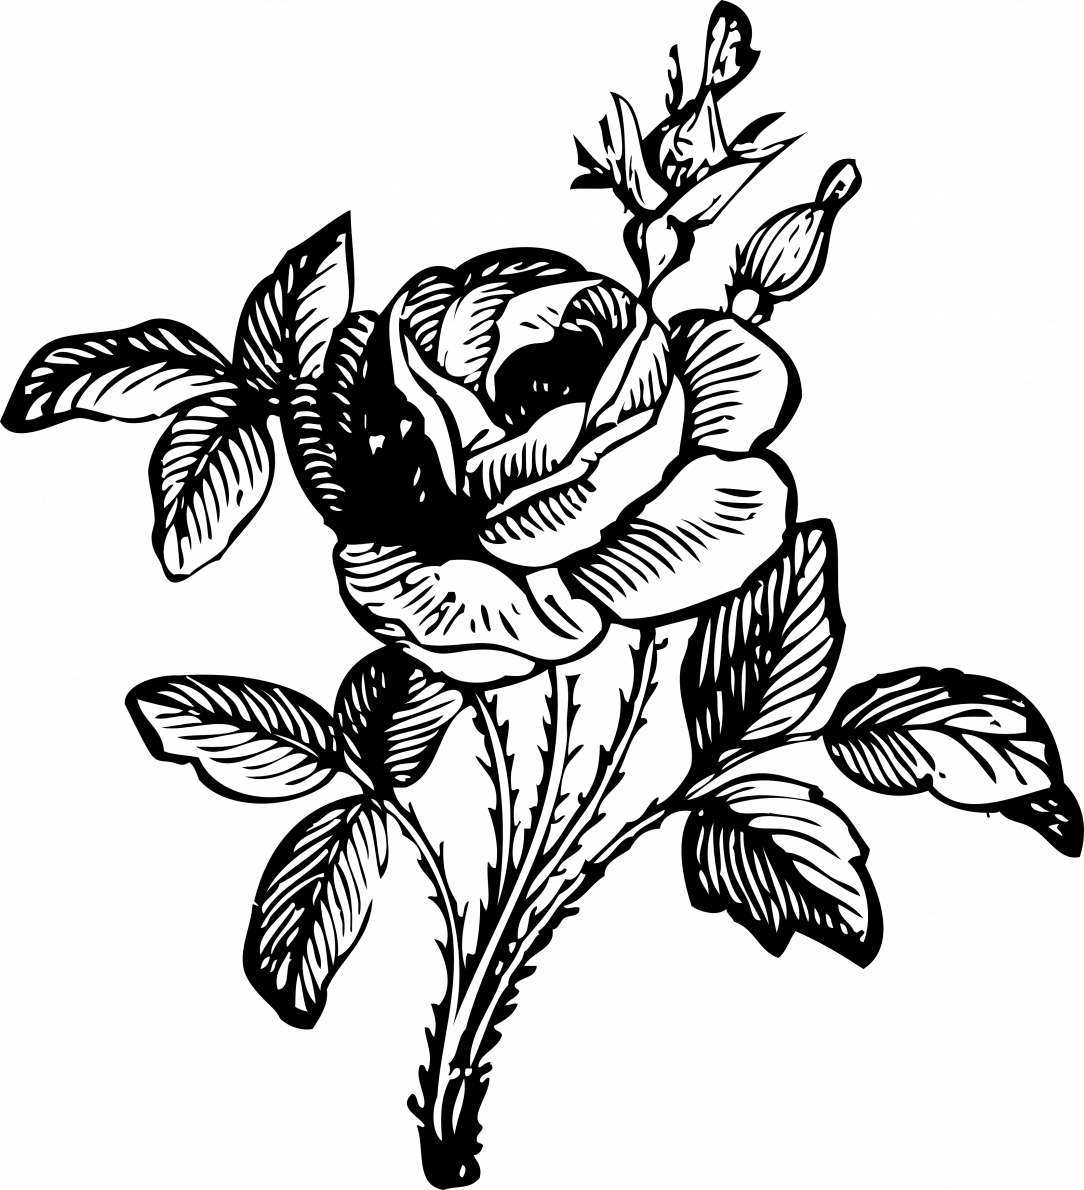 How To Draw A Simple Rose Bush Bunch Of Flowers - Flower Bouquet Clip Art Black And White - Png ...